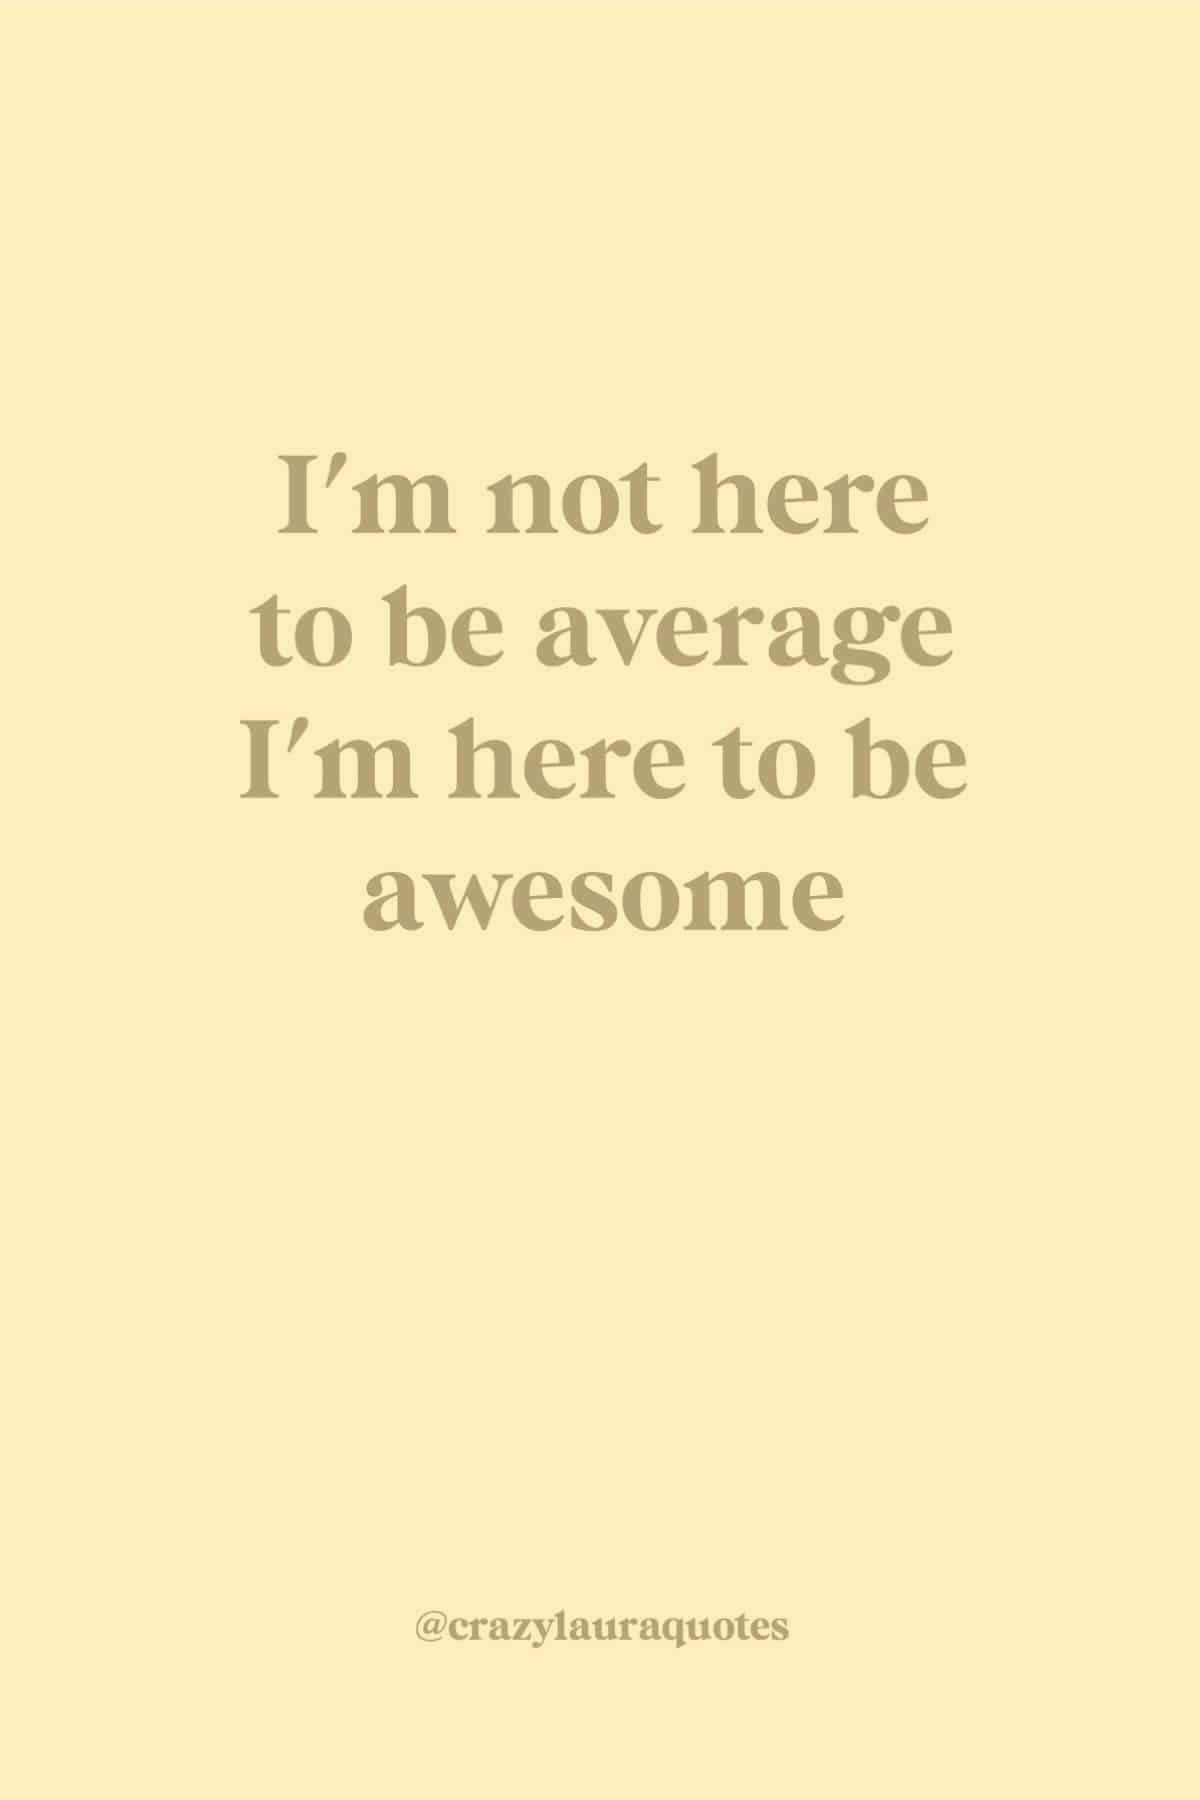 inspirational quote about being awesome